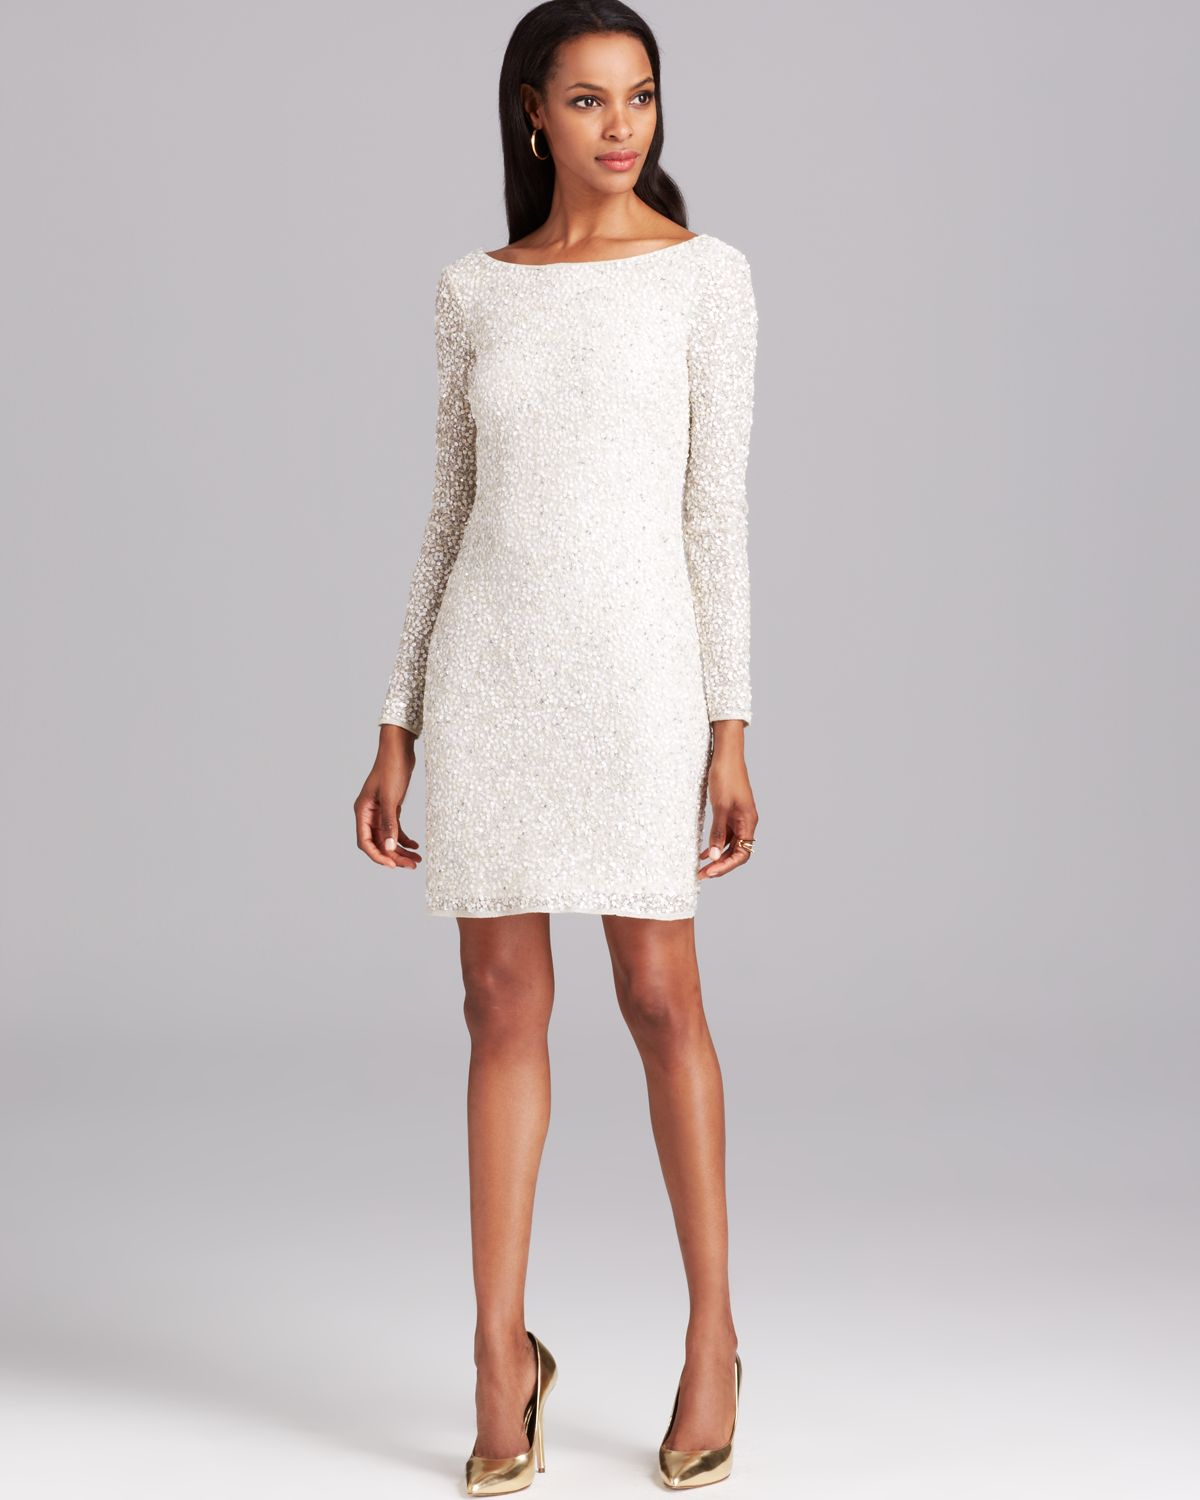 White Cocktail Dress 51